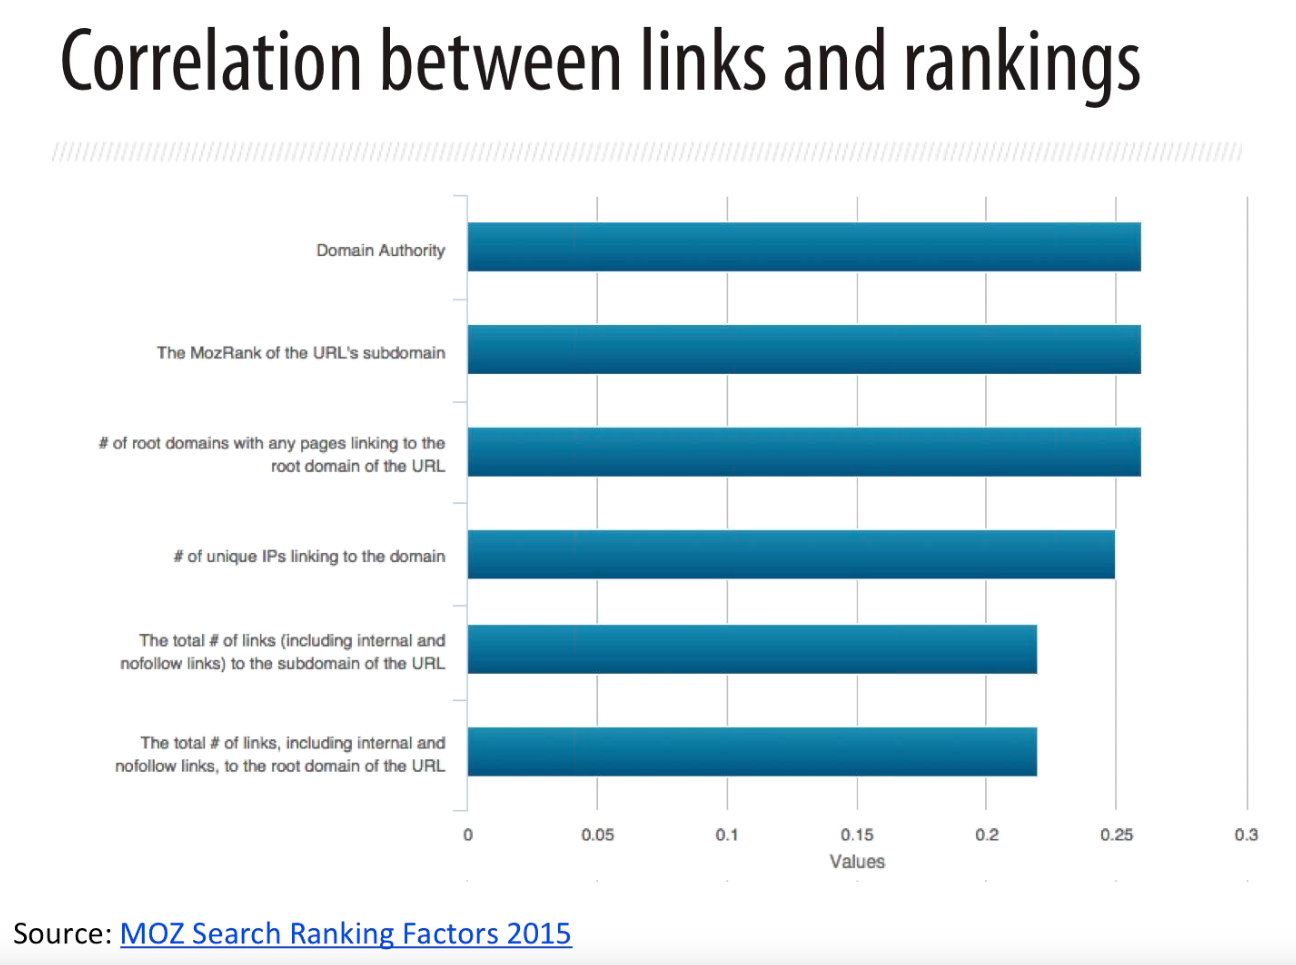 Correlation between links and rankings